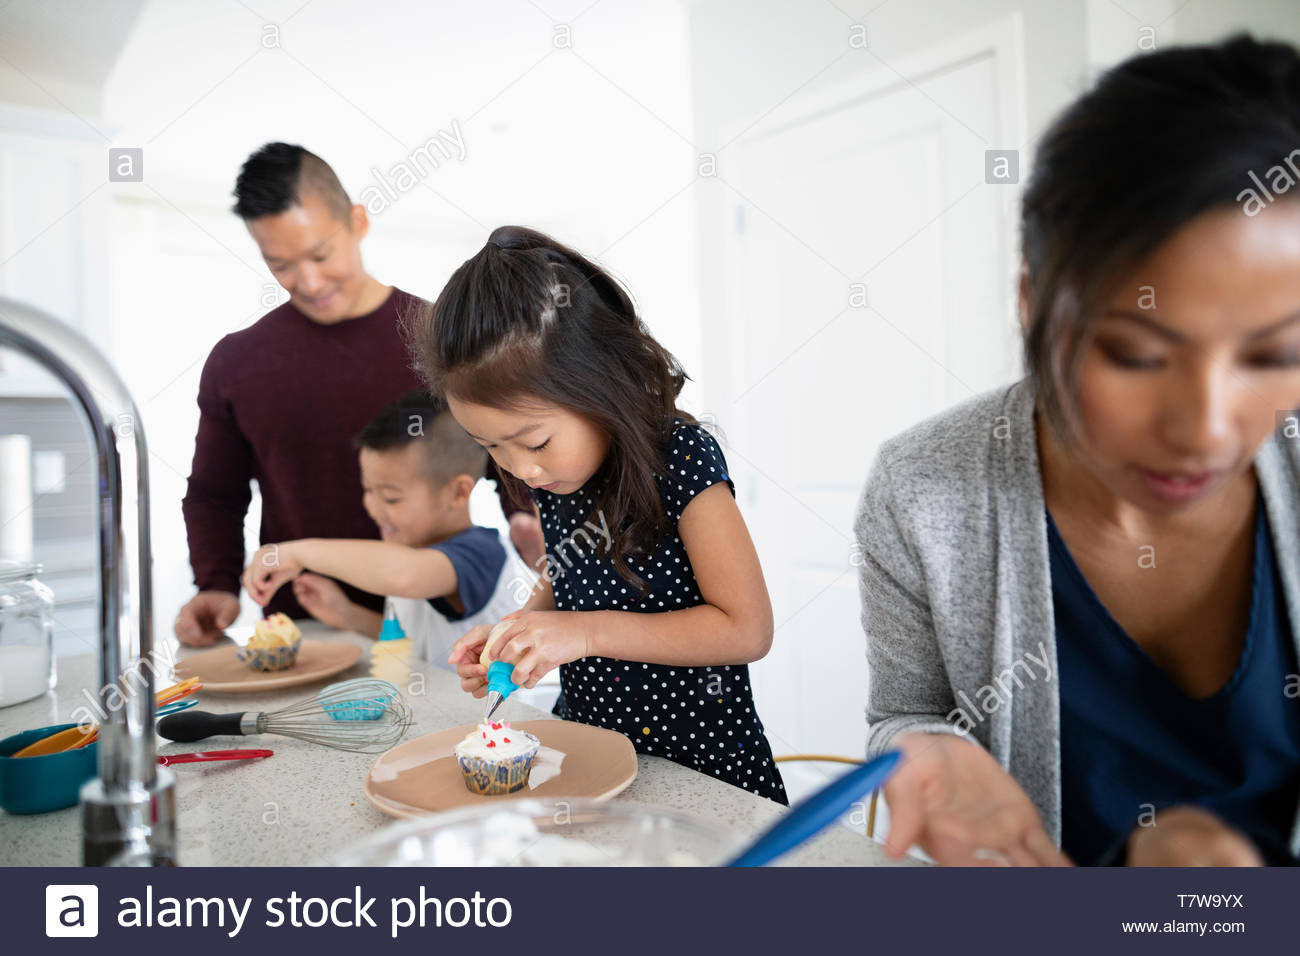 Family decorating cupcakes in kitchen - Stock Image